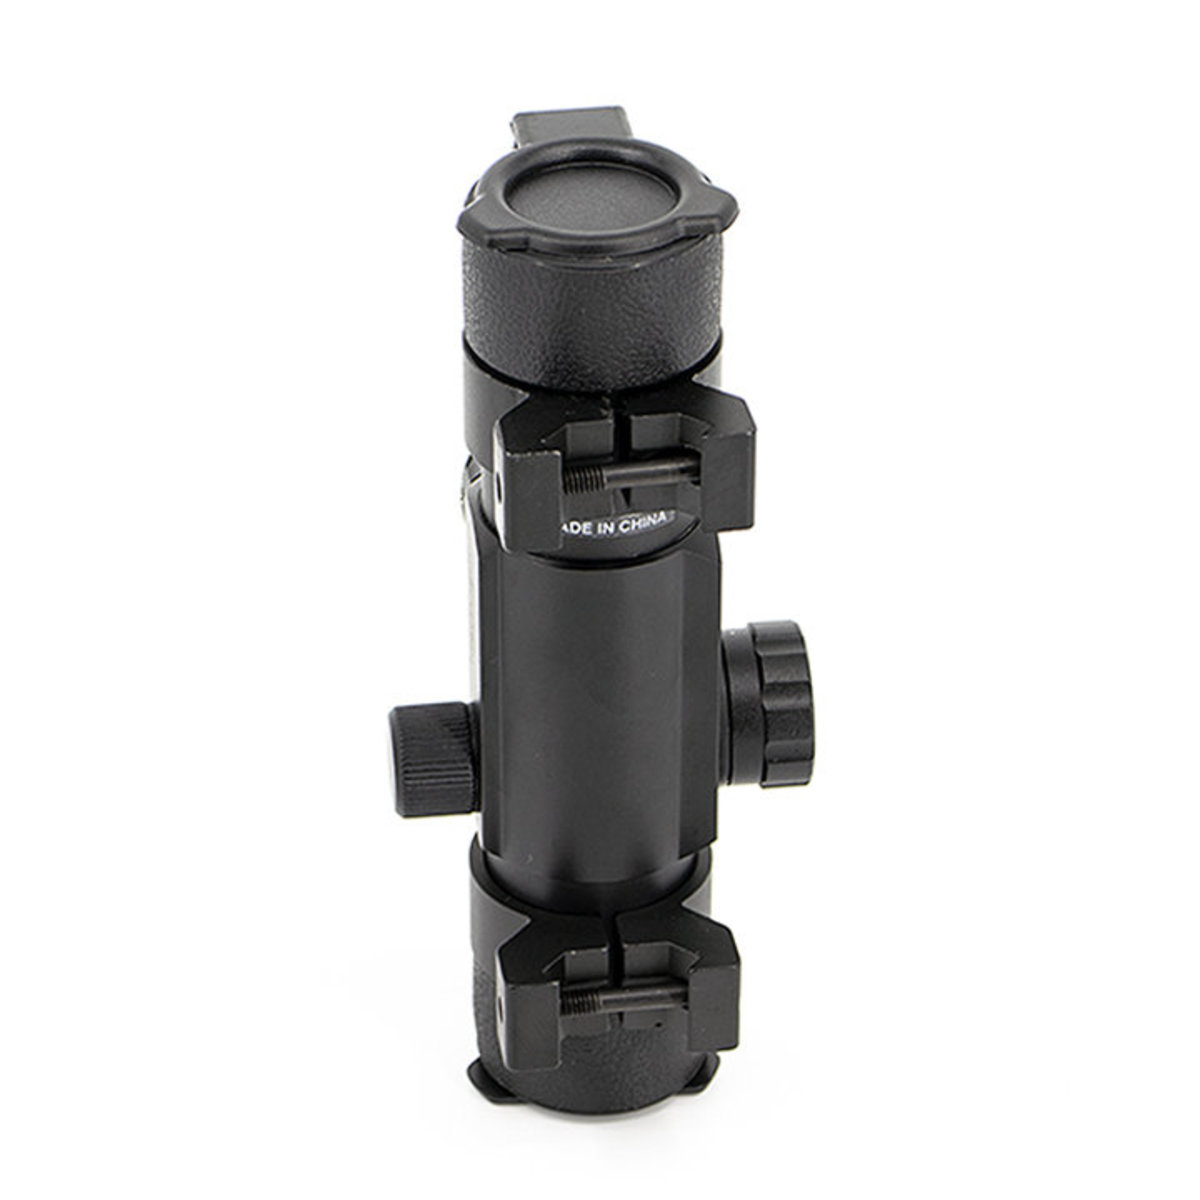 View larger image of Valken 1x30 Multi-Reticle Red Dot Sight